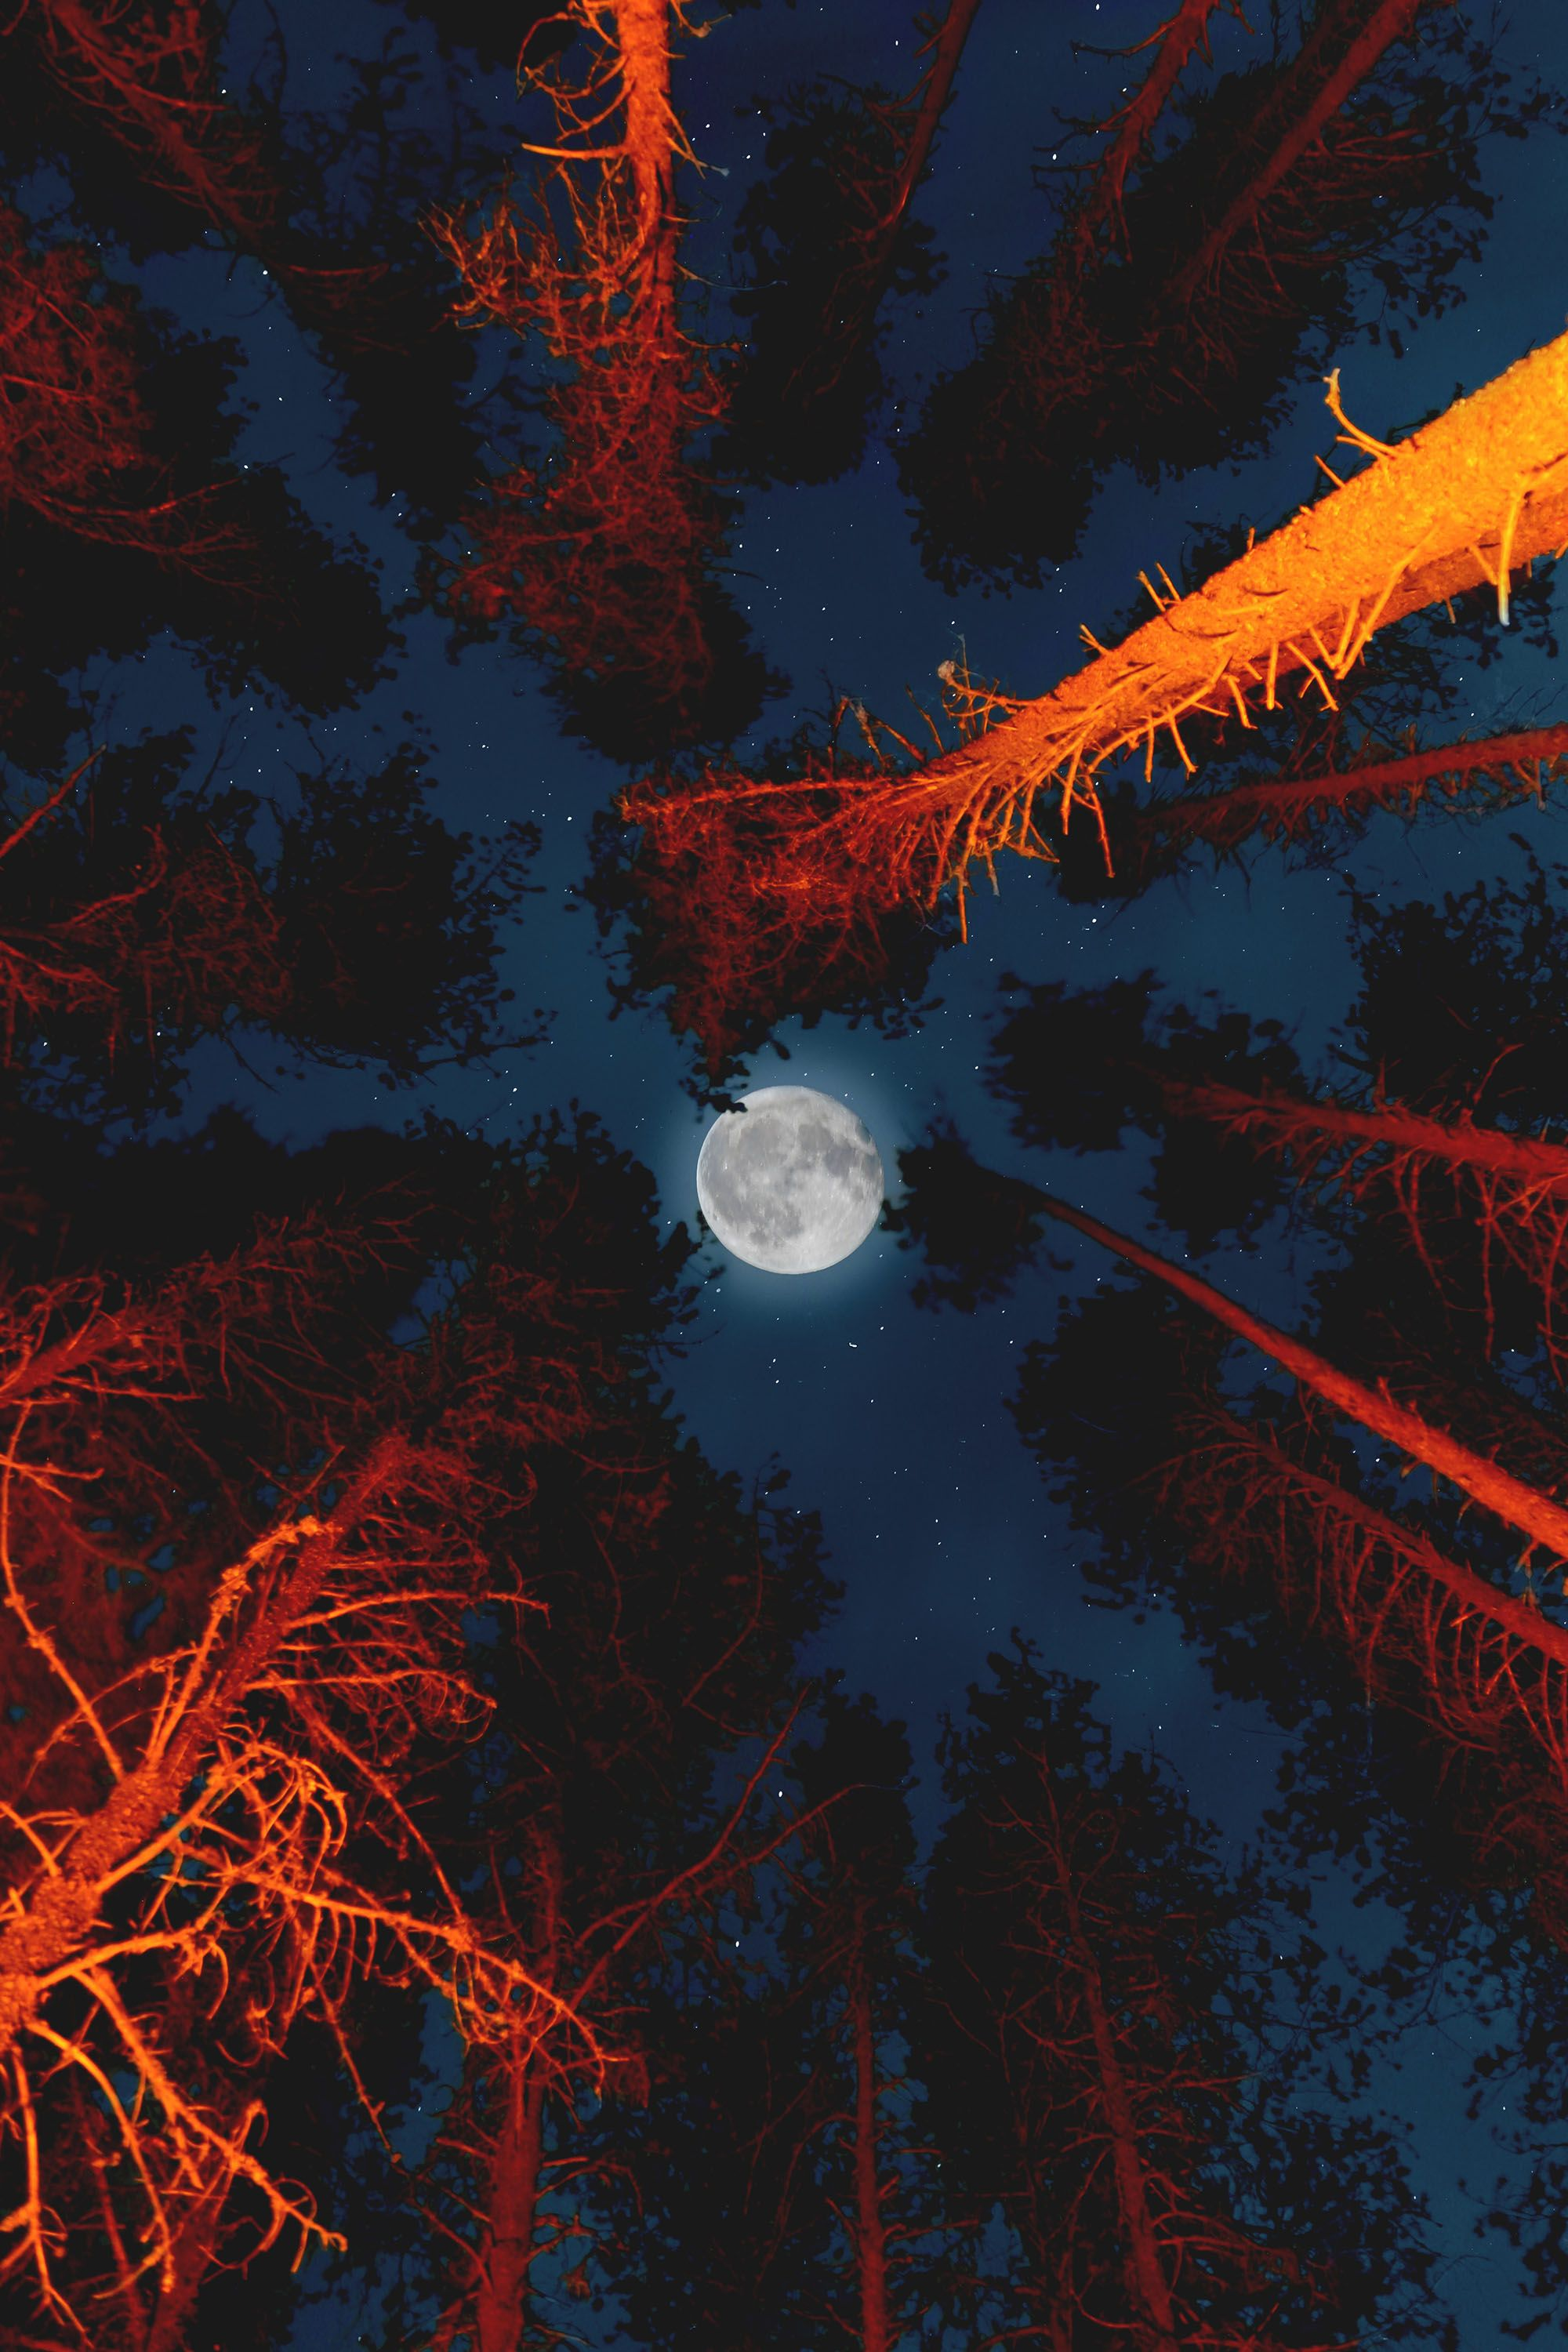 Pin By Suzanne Brown On Night Skies Cute Wallpapers Free Halloween Pictures Moon Photography